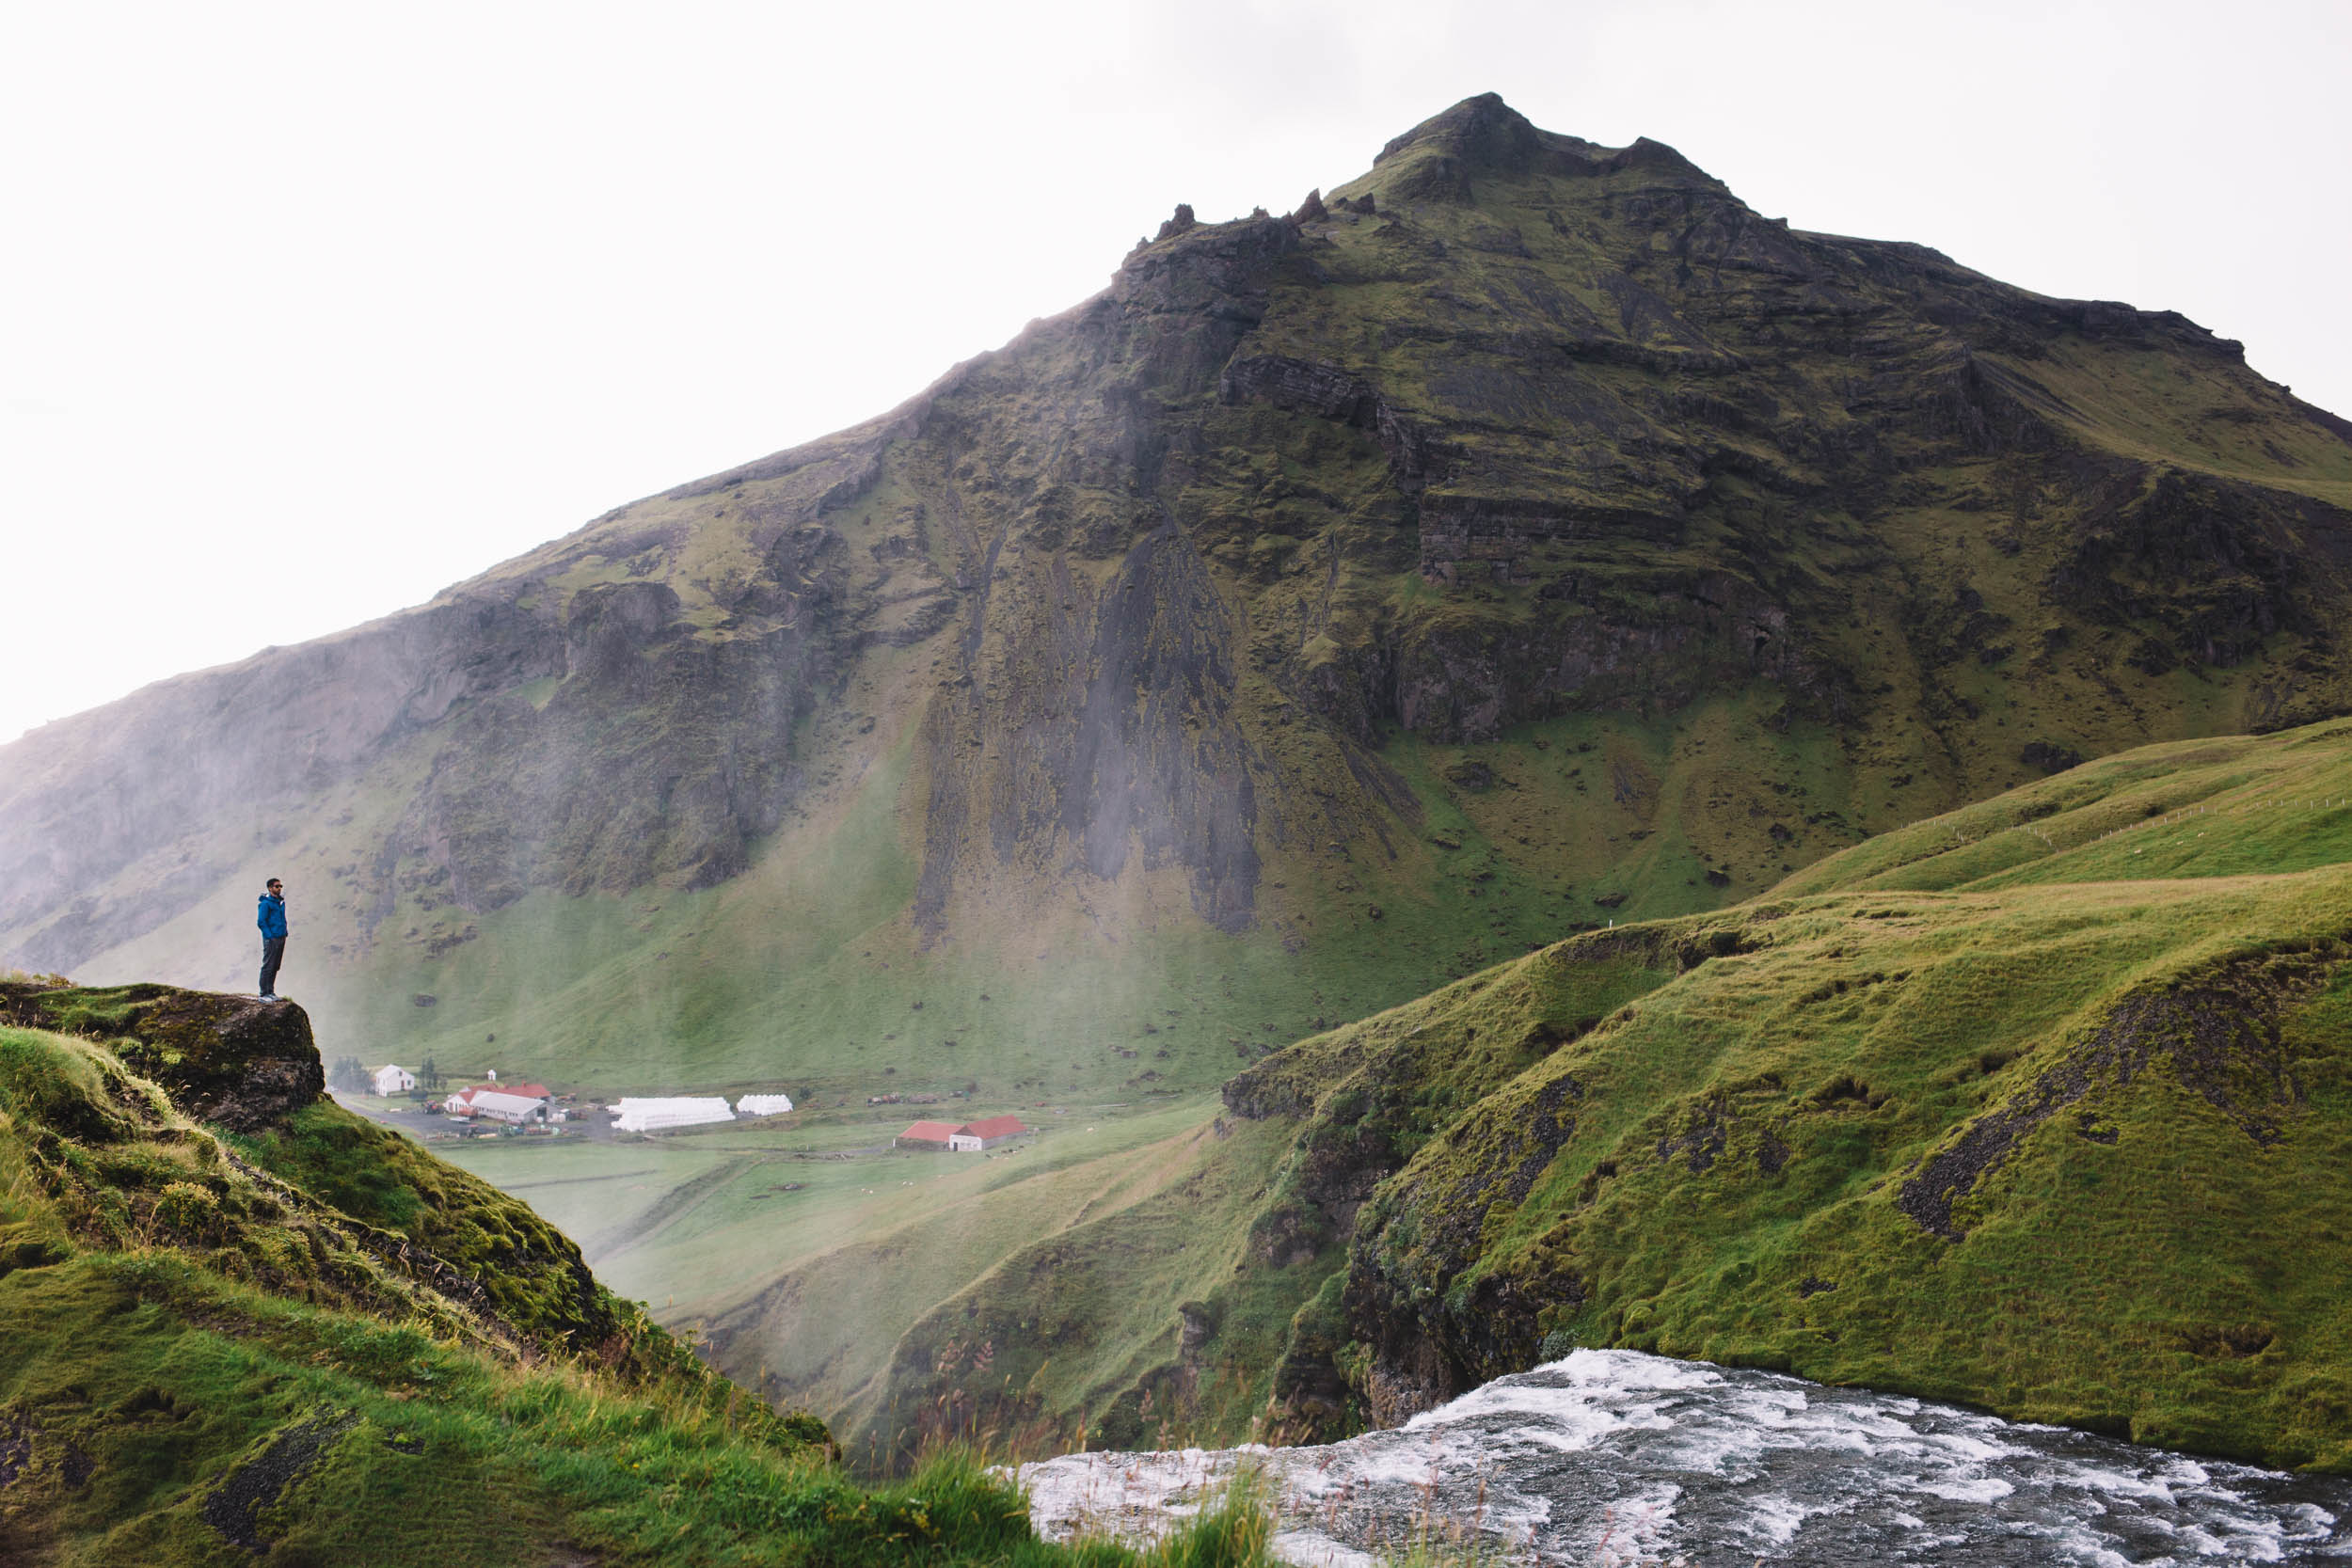 iceland-travel-camping-ring-road-021.jpg